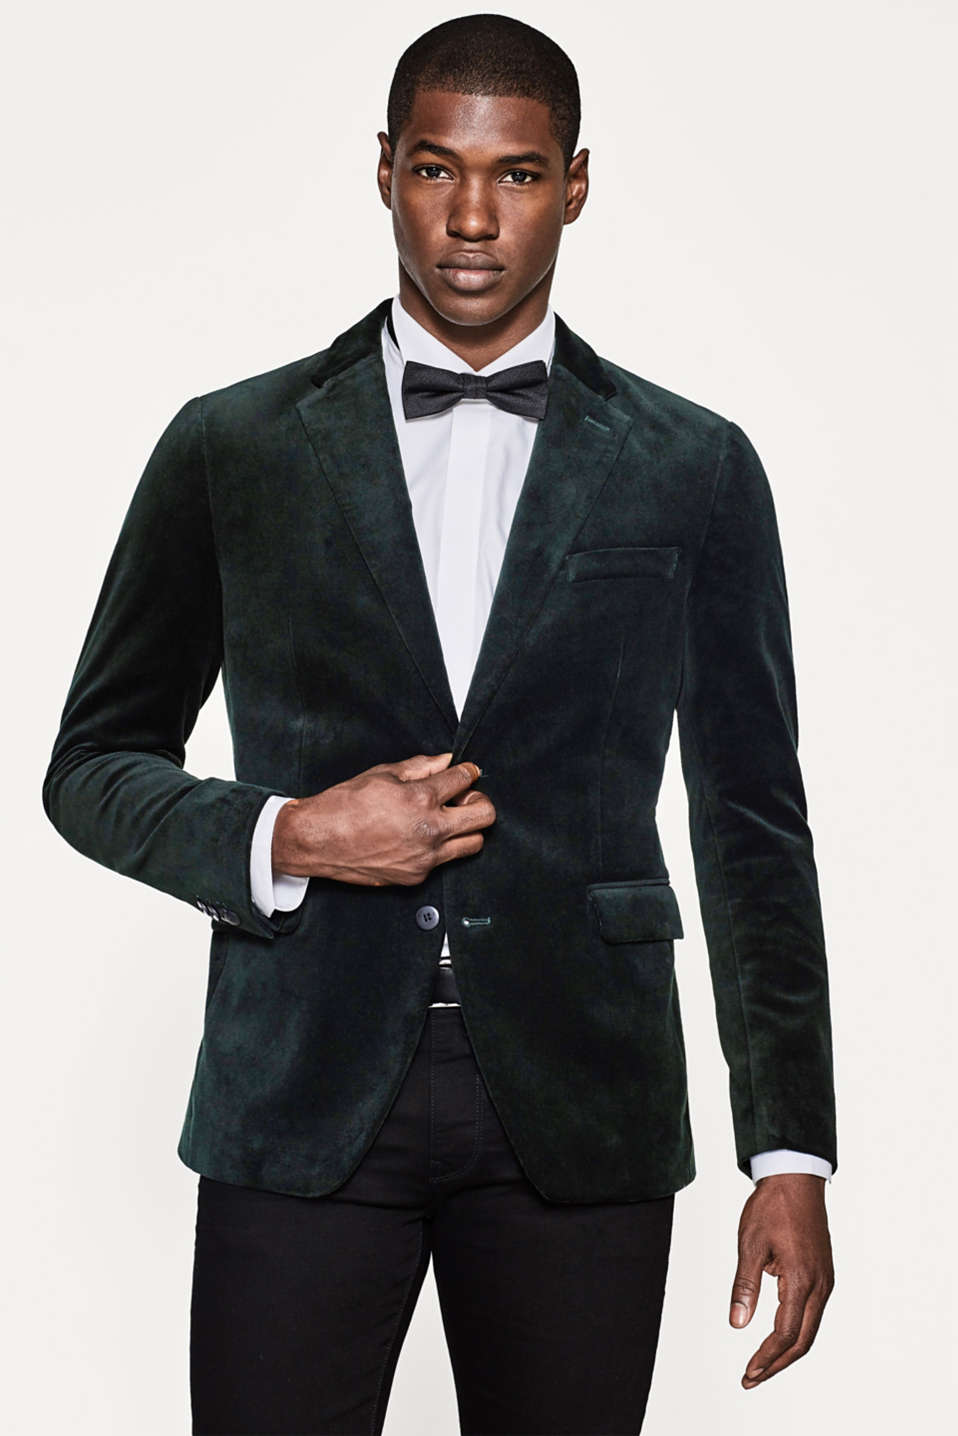 Esprit - Exquisite velvet jacket + stretch for comfort